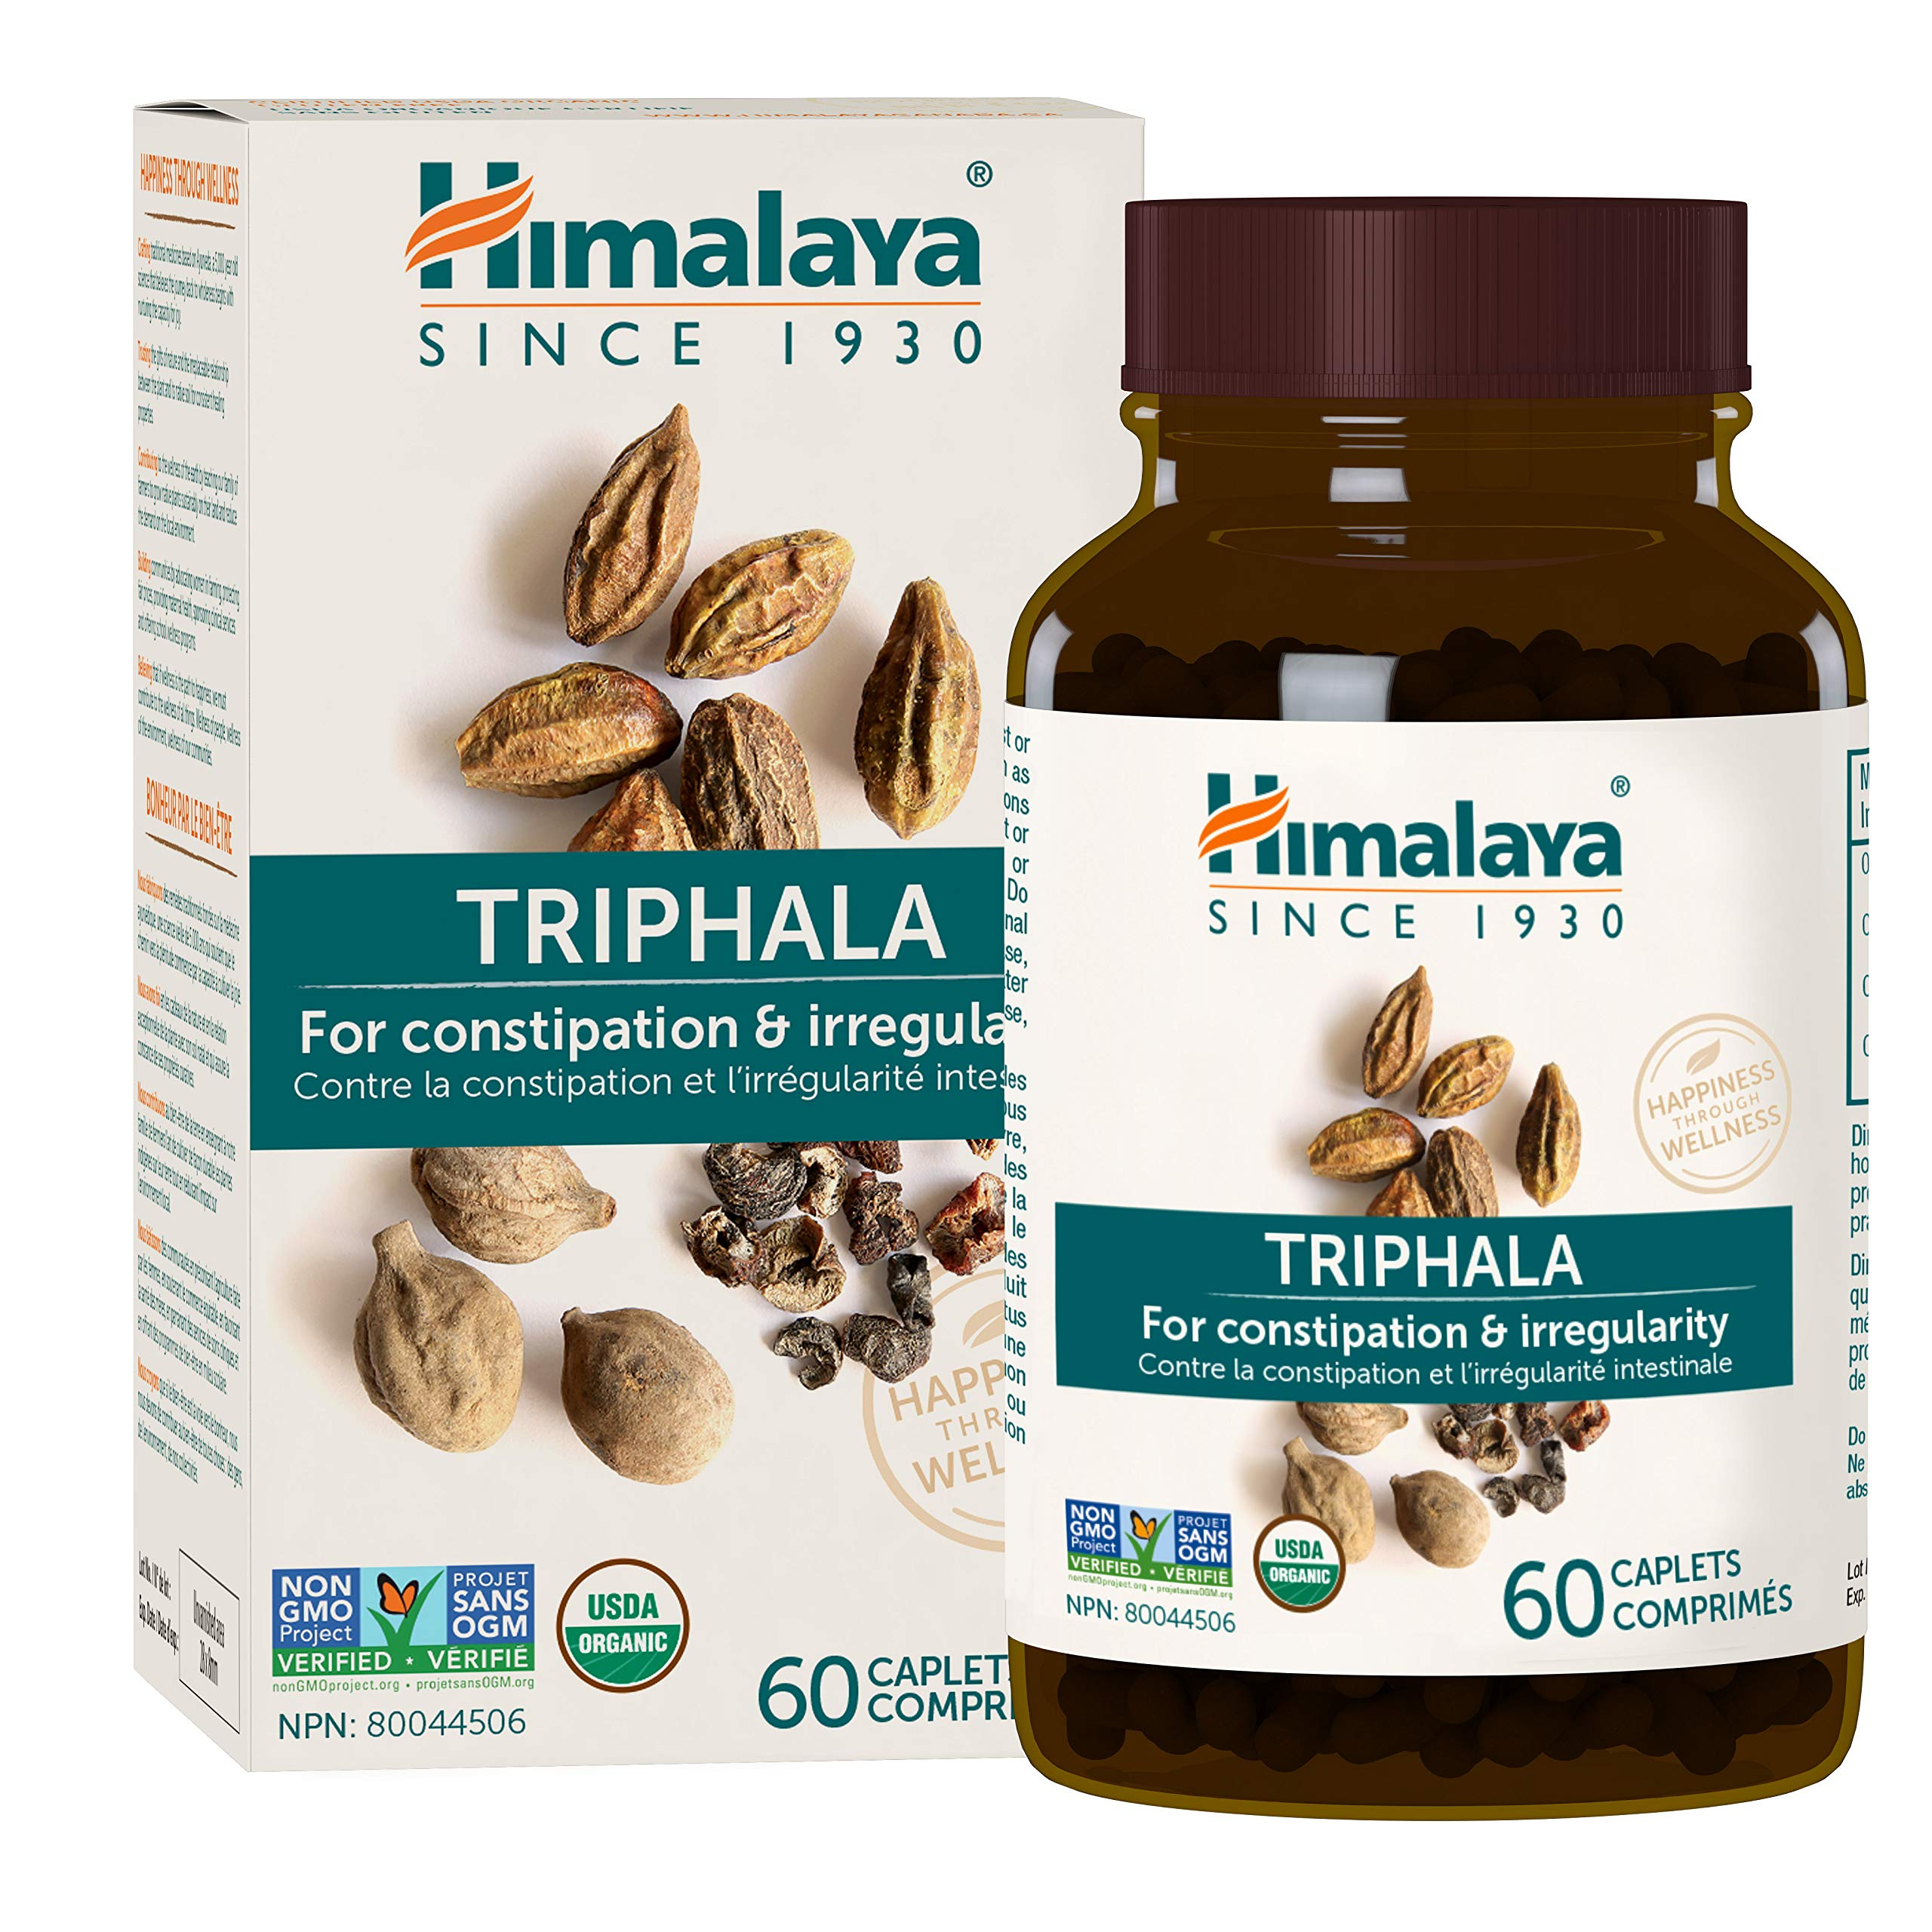 Himalaya Organic Triphala, Colon Cleanse & Digestive Supplement for Occasional Constipation, 688 mg, 60 Caplets, 2 Month Supply